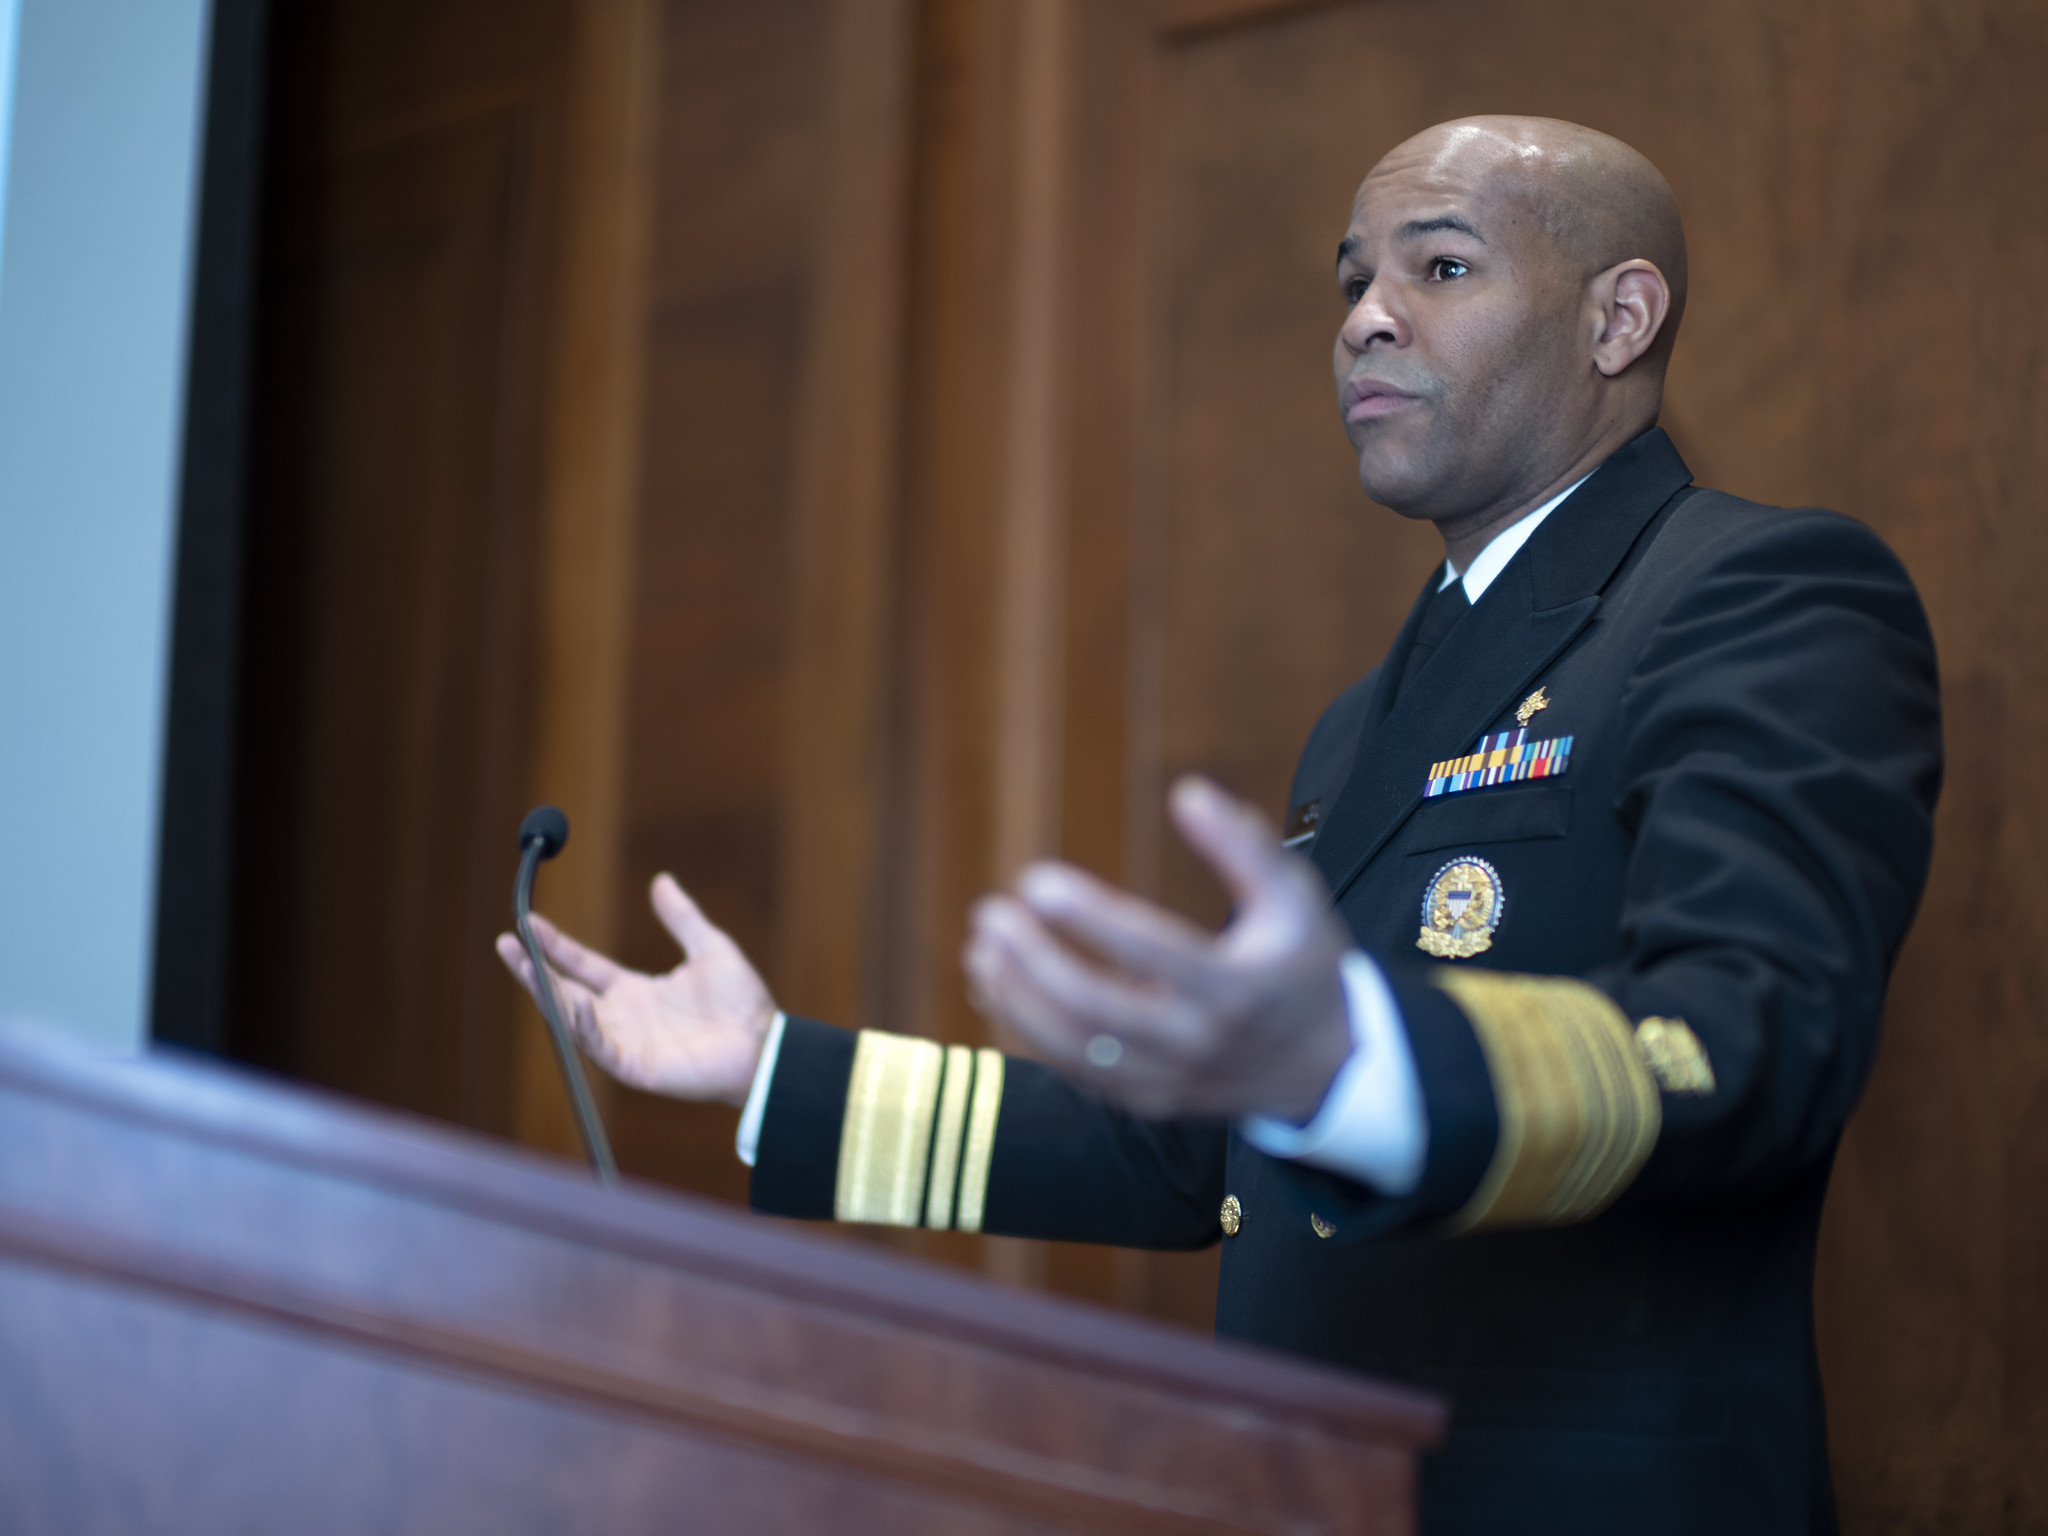 Surgeon General Jerome Adams 'absolutely' expects lower death toll from coronavirus outbreak